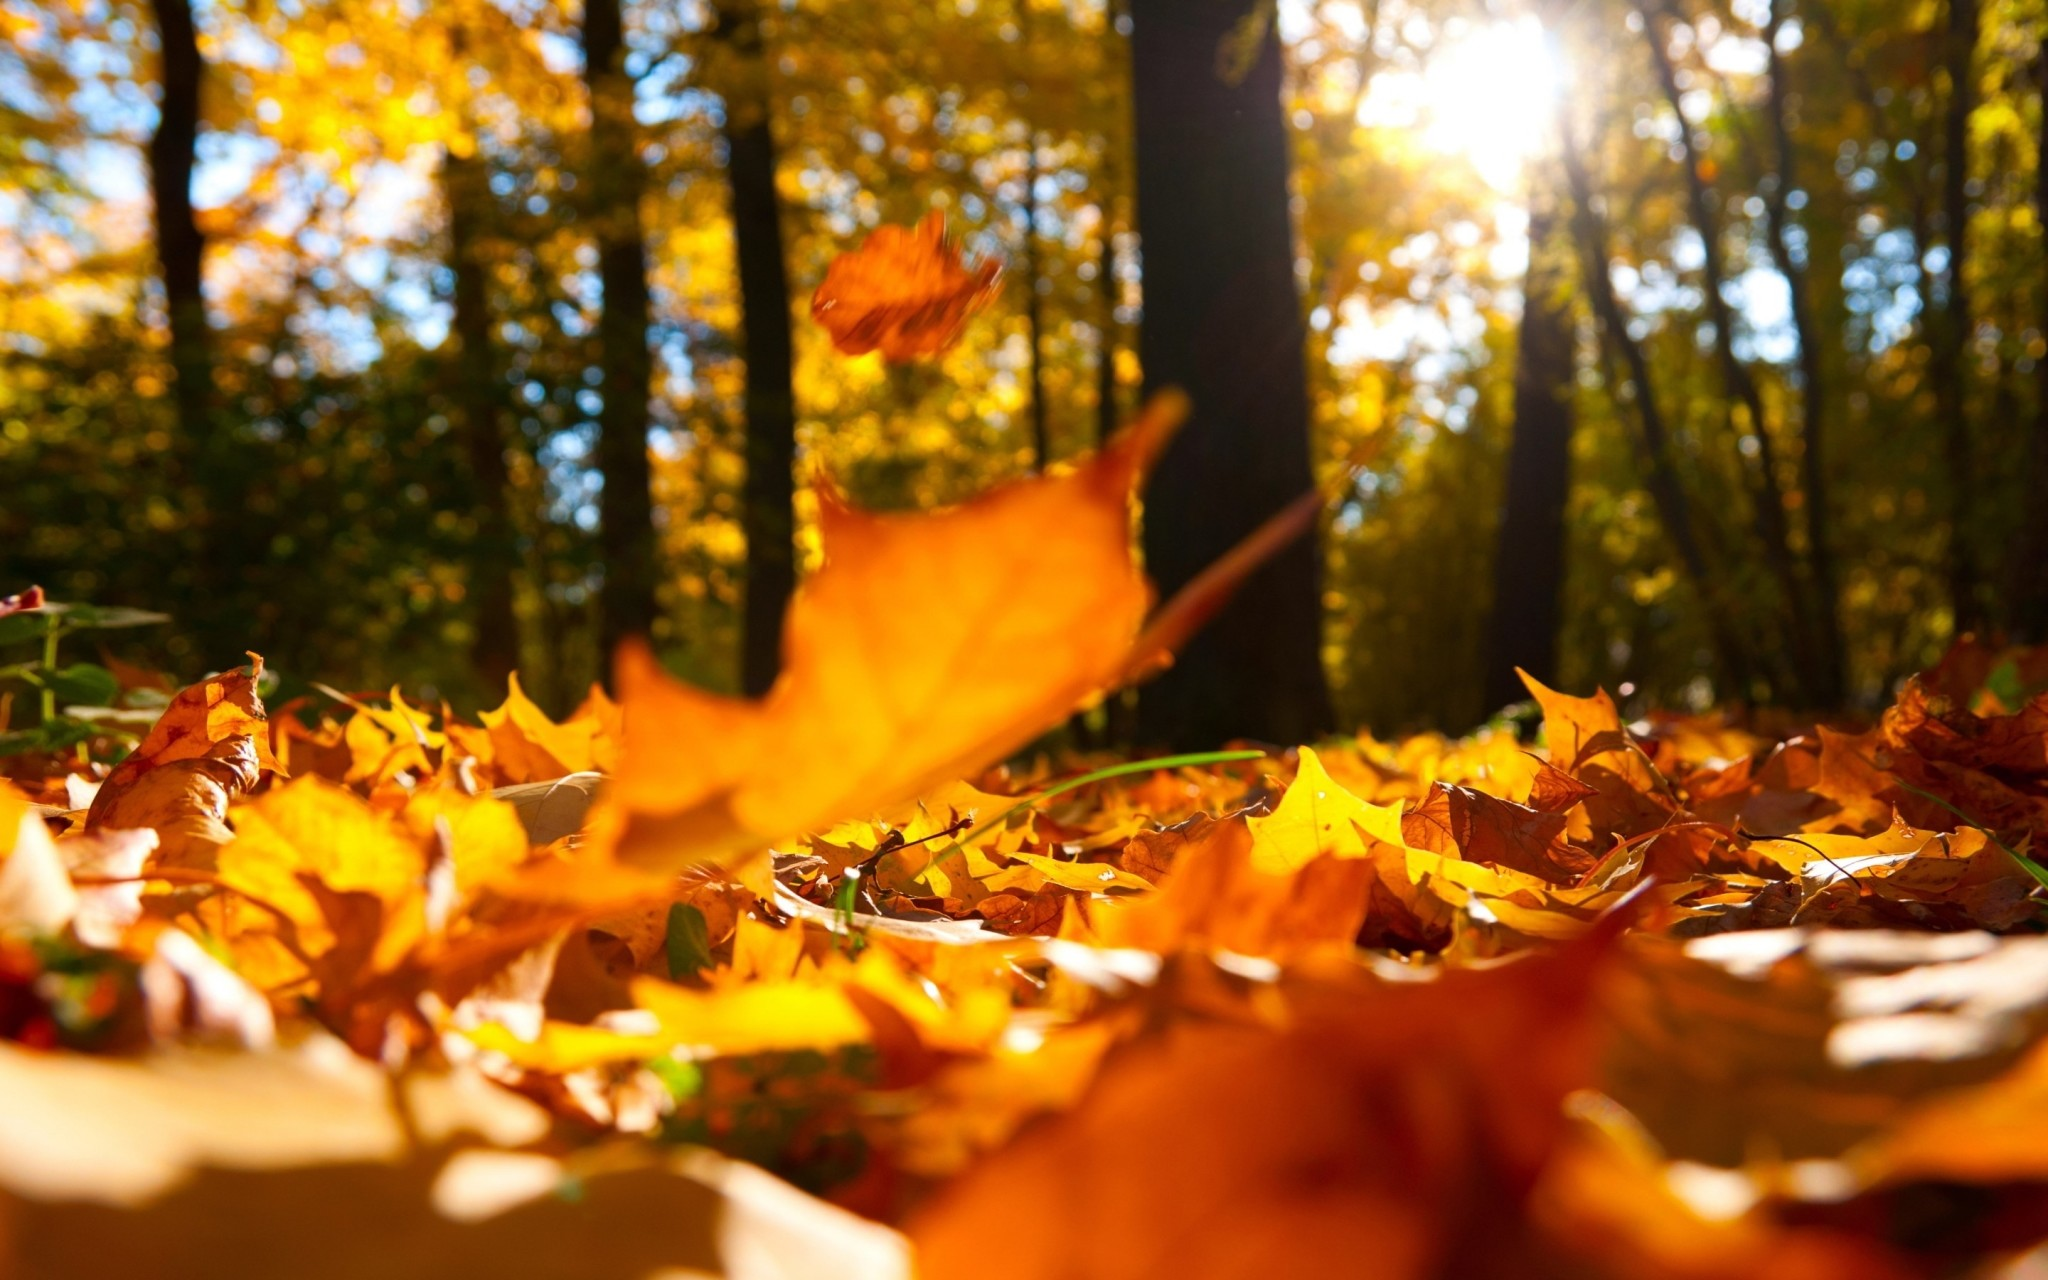 autumn hd widescreen wallpapers for laptop